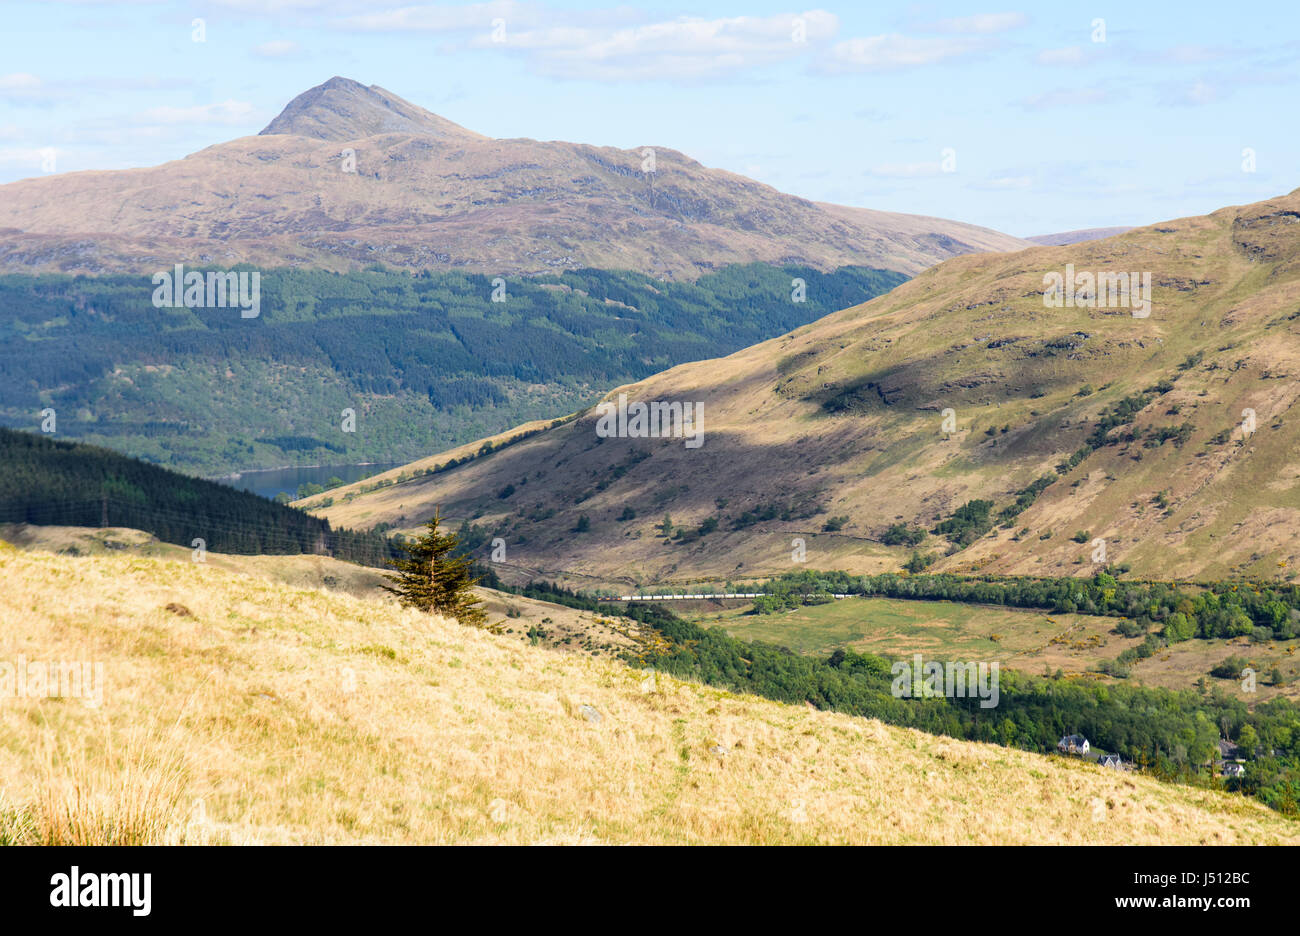 A freight train passes Arrochar on the West Highland Line railway, with Ben Lomond mountain rising behind. - Stock Image